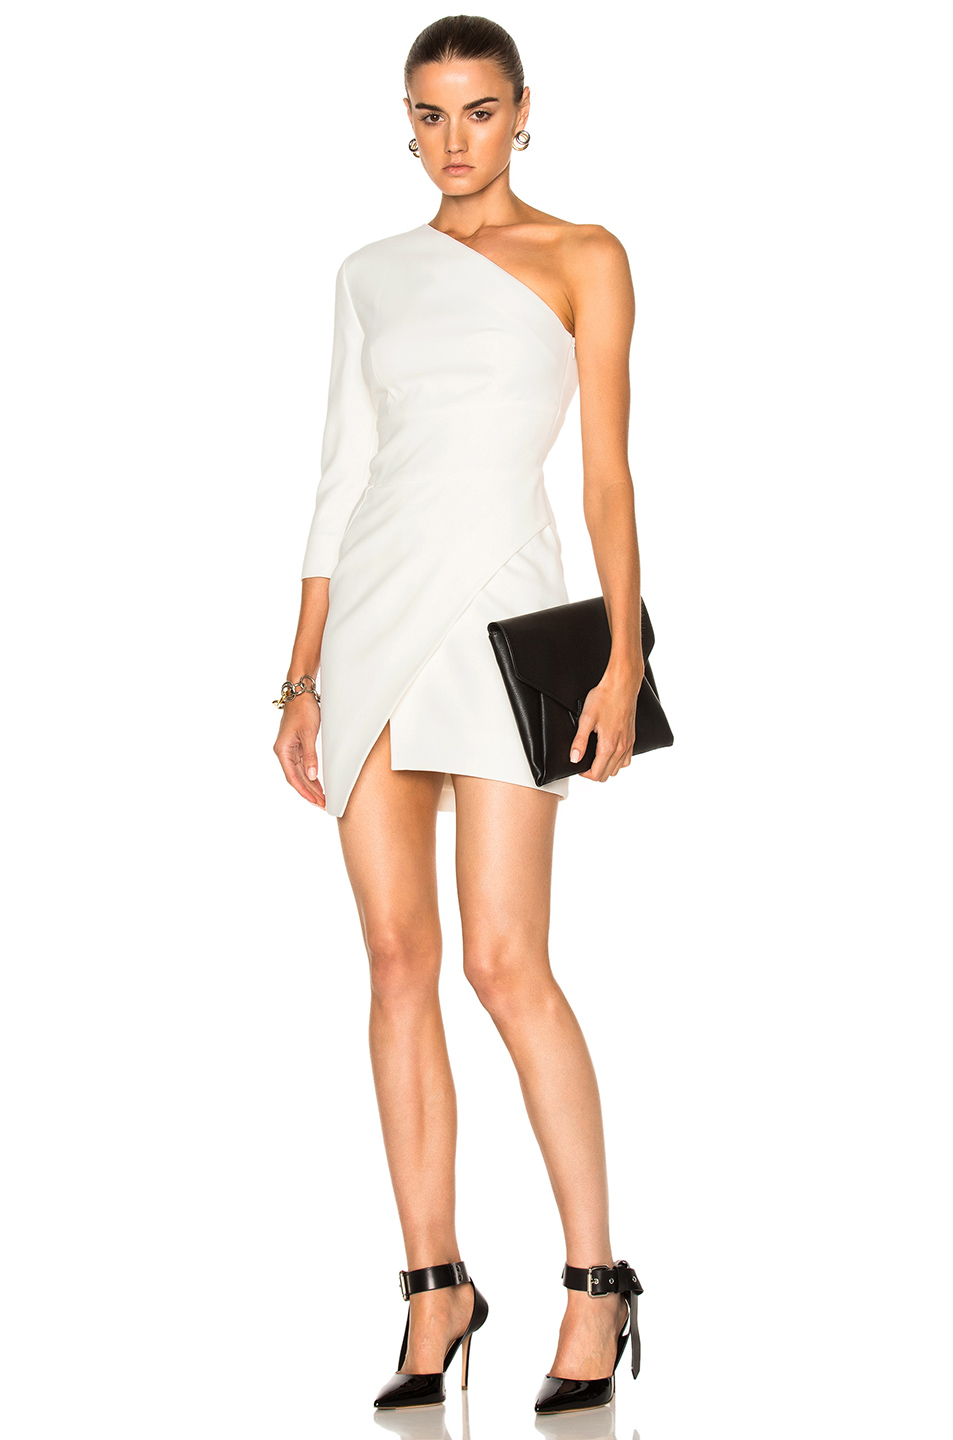 Alexandre Vauthier Cady One Shoulder Dress in White